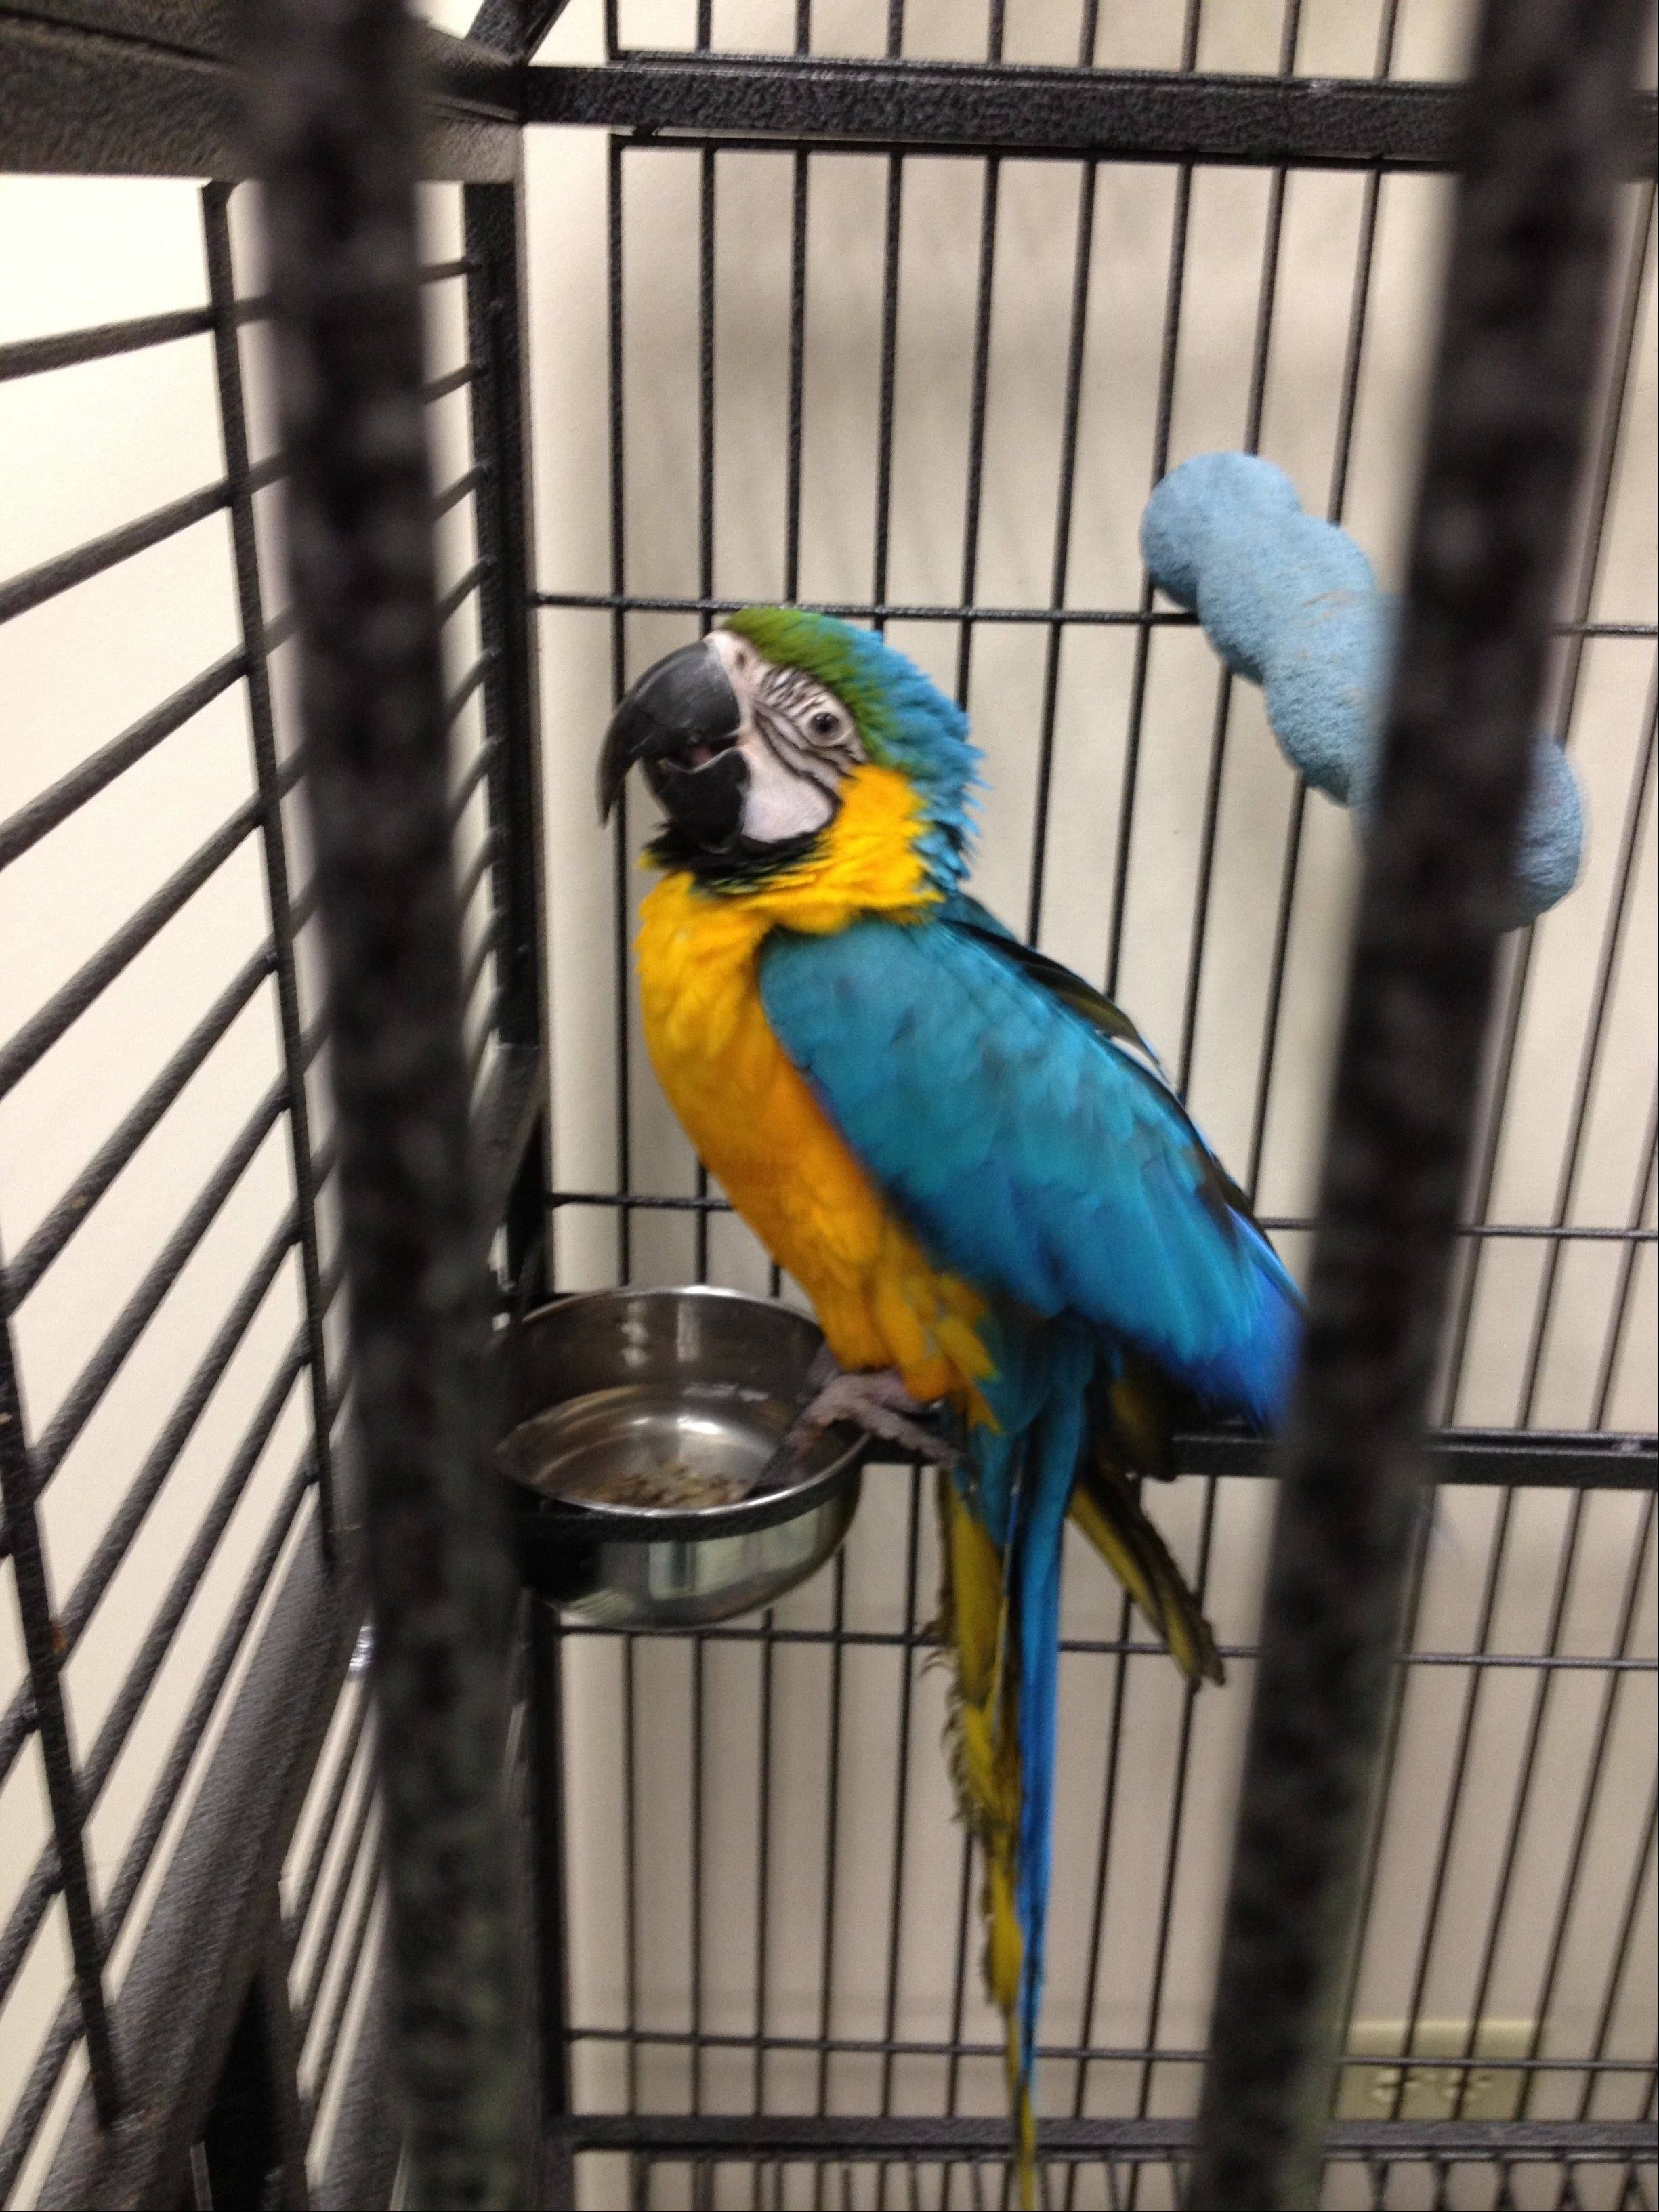 This bird was among 55 living birds, 19 living dogs, 11 living cats, three living rabbits and three dead animals found in a Woodstock-area home whose owner had not been seen in weeks, authorities said Tuesday.